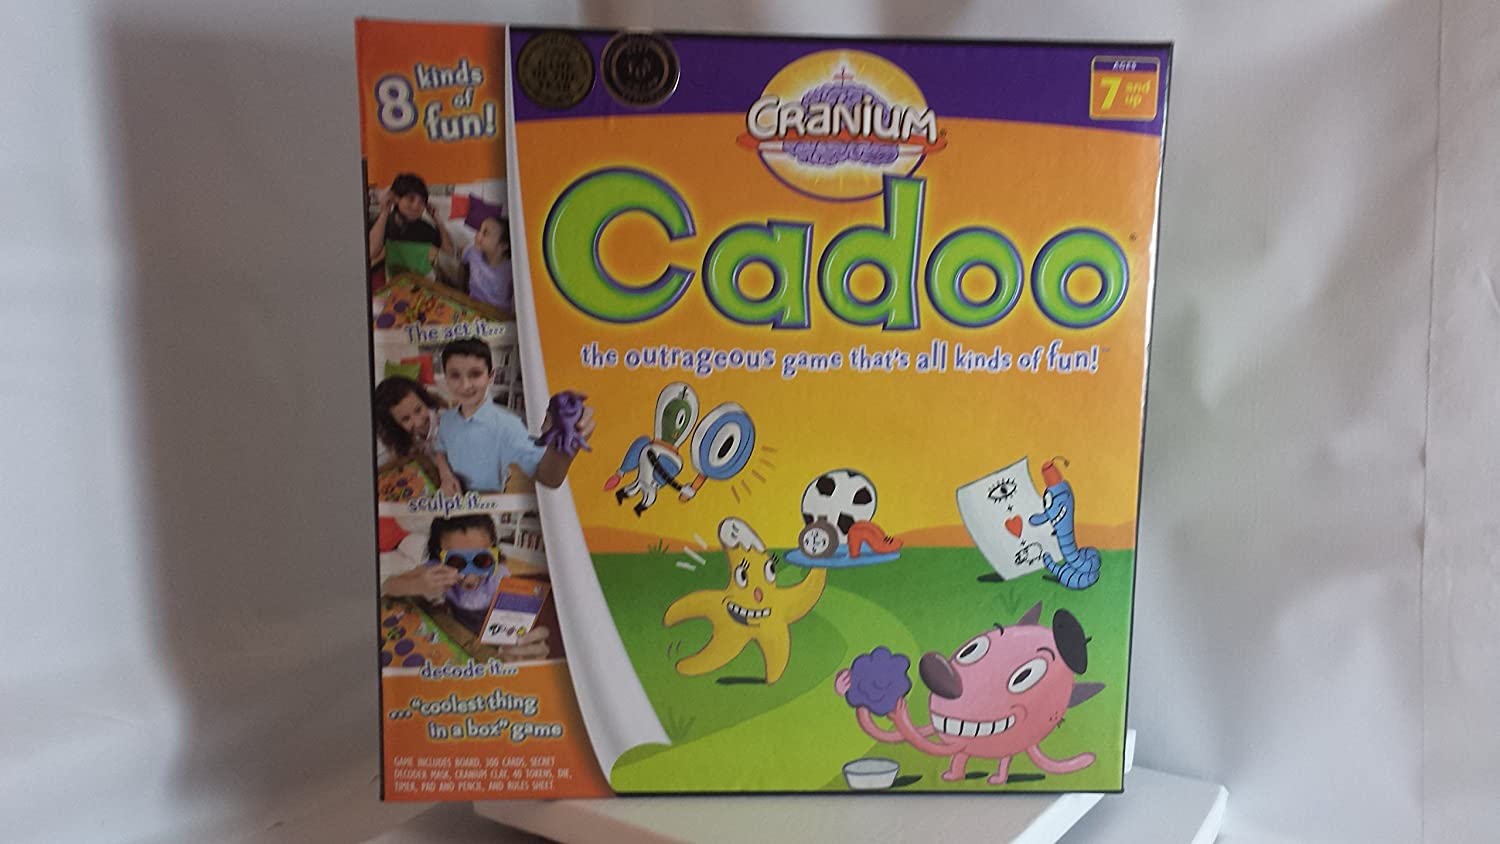 moda Cranium Cadoo..the Outrageous Game Game Game That's All Kinds of Fun..8 Kinds of Fun  marca de lujo